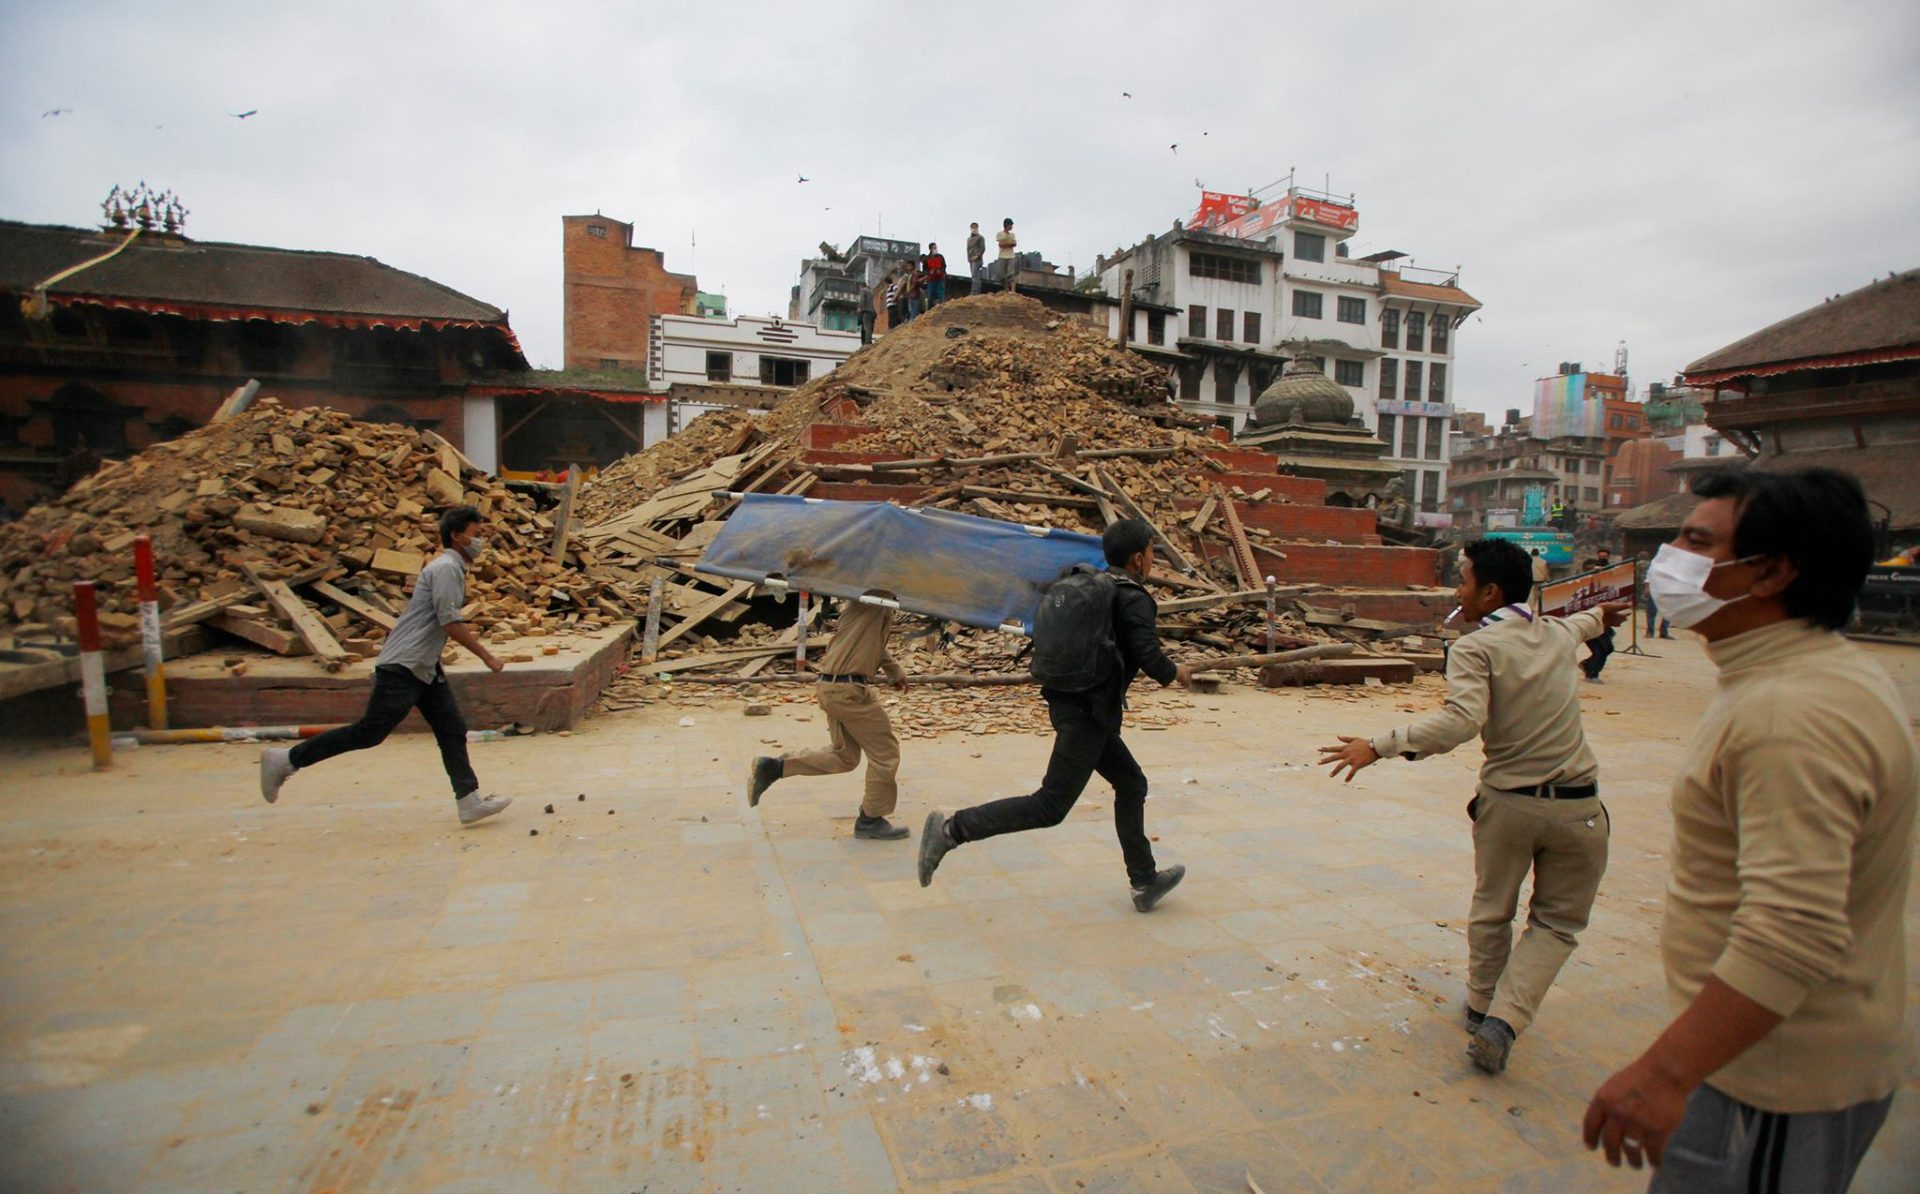 Rescuers rush to help victims of the devestating earthquake in Nepal - April 25, 2015